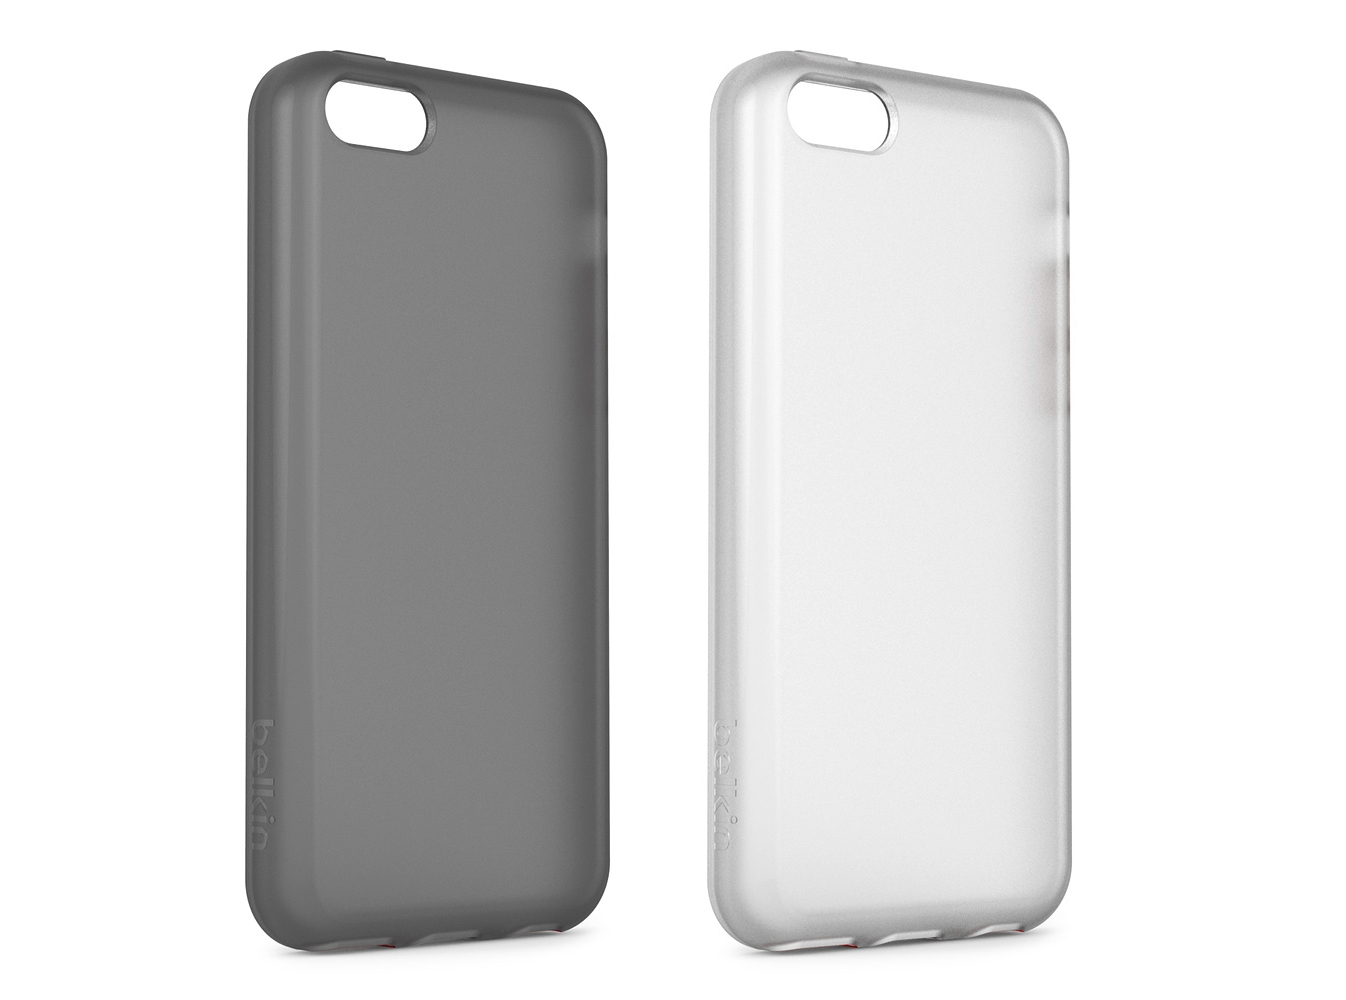 Duo silicone Belkin Iphone 5C